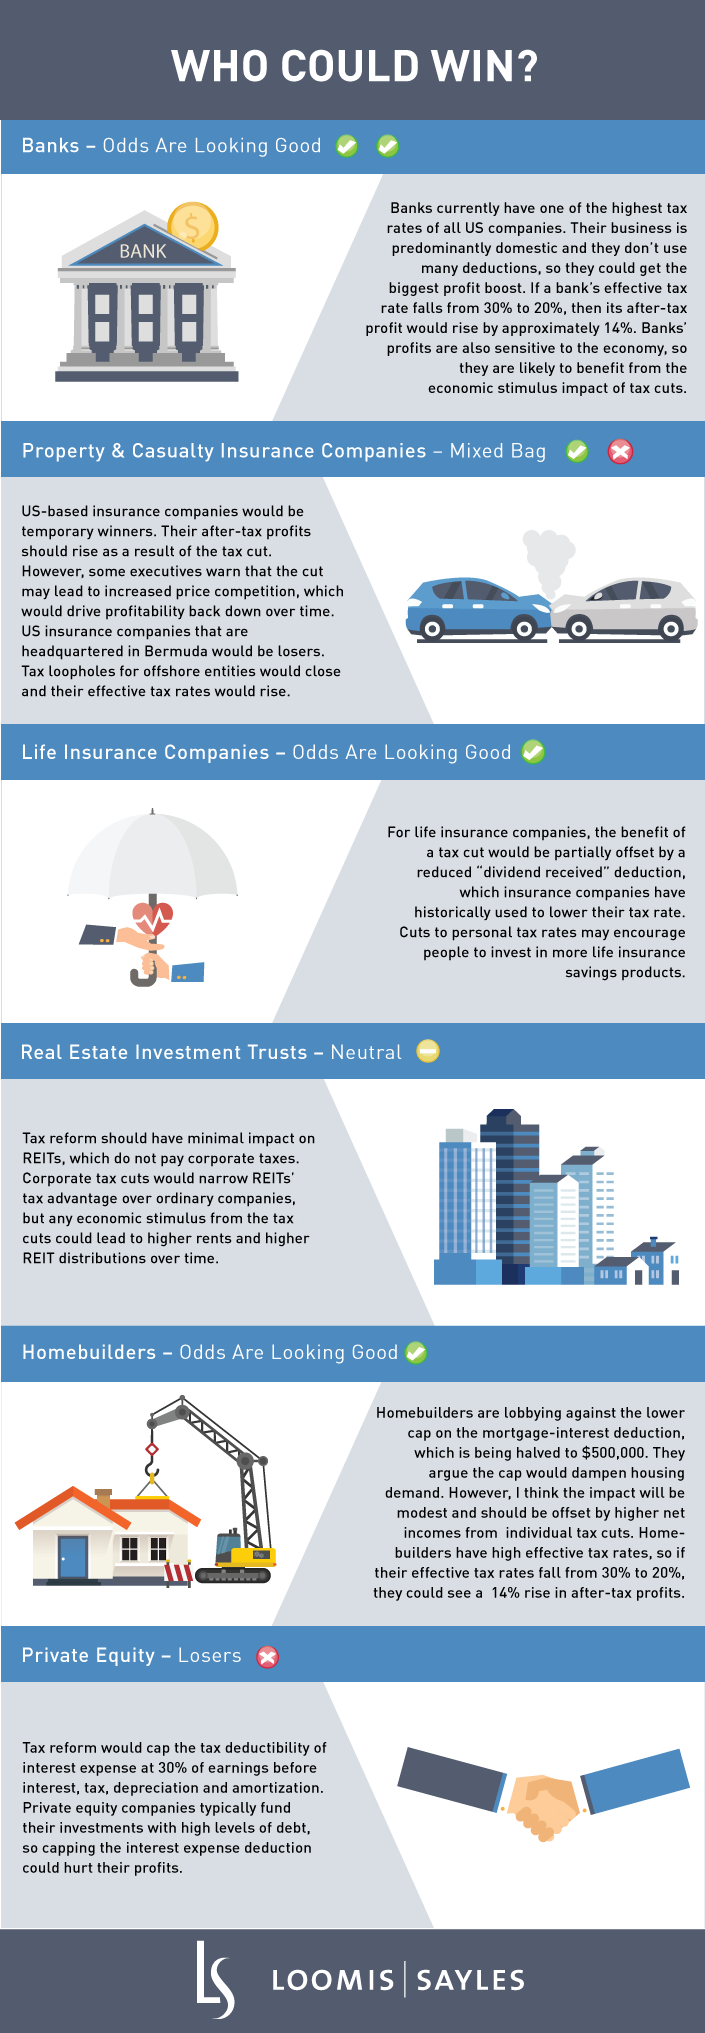 Impact-of-tax-reform-inforgraphic7.png